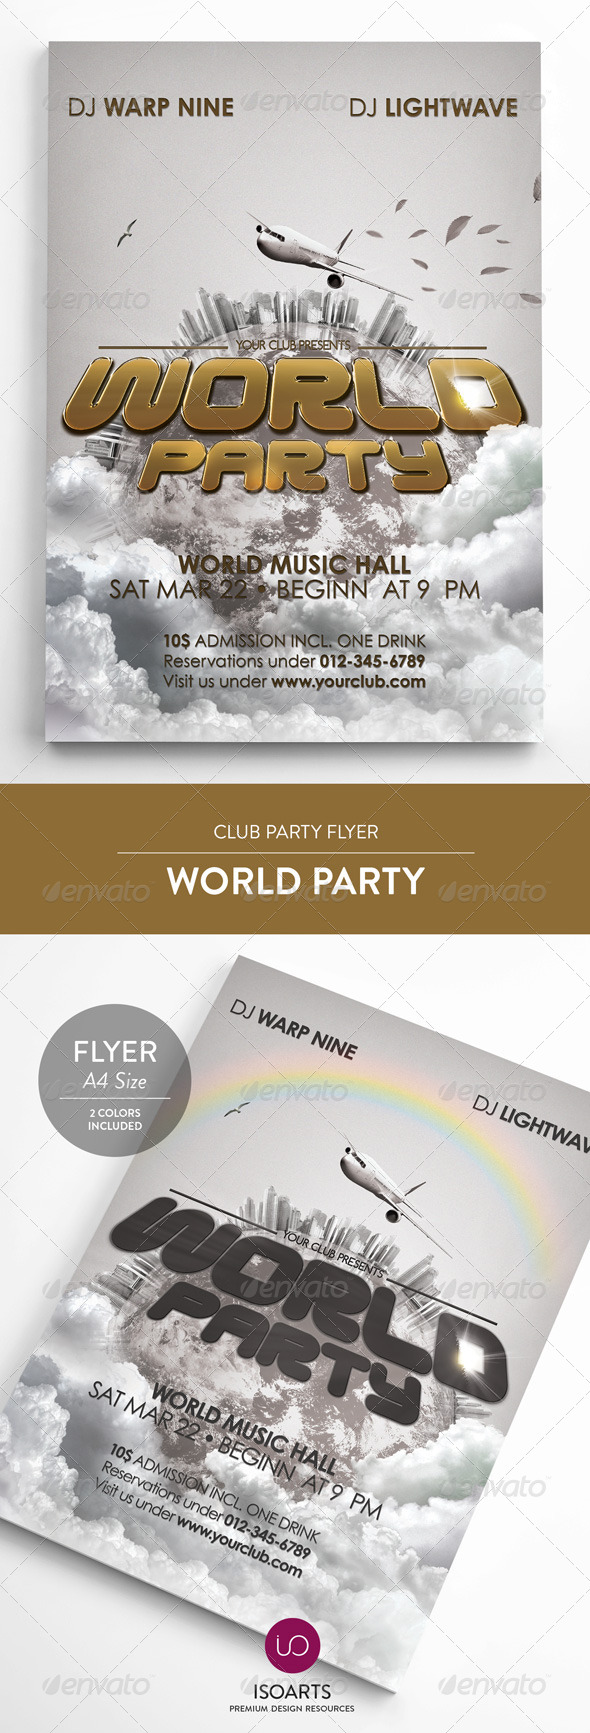 World Party • Club Party Flyer - Clubs & Parties Events